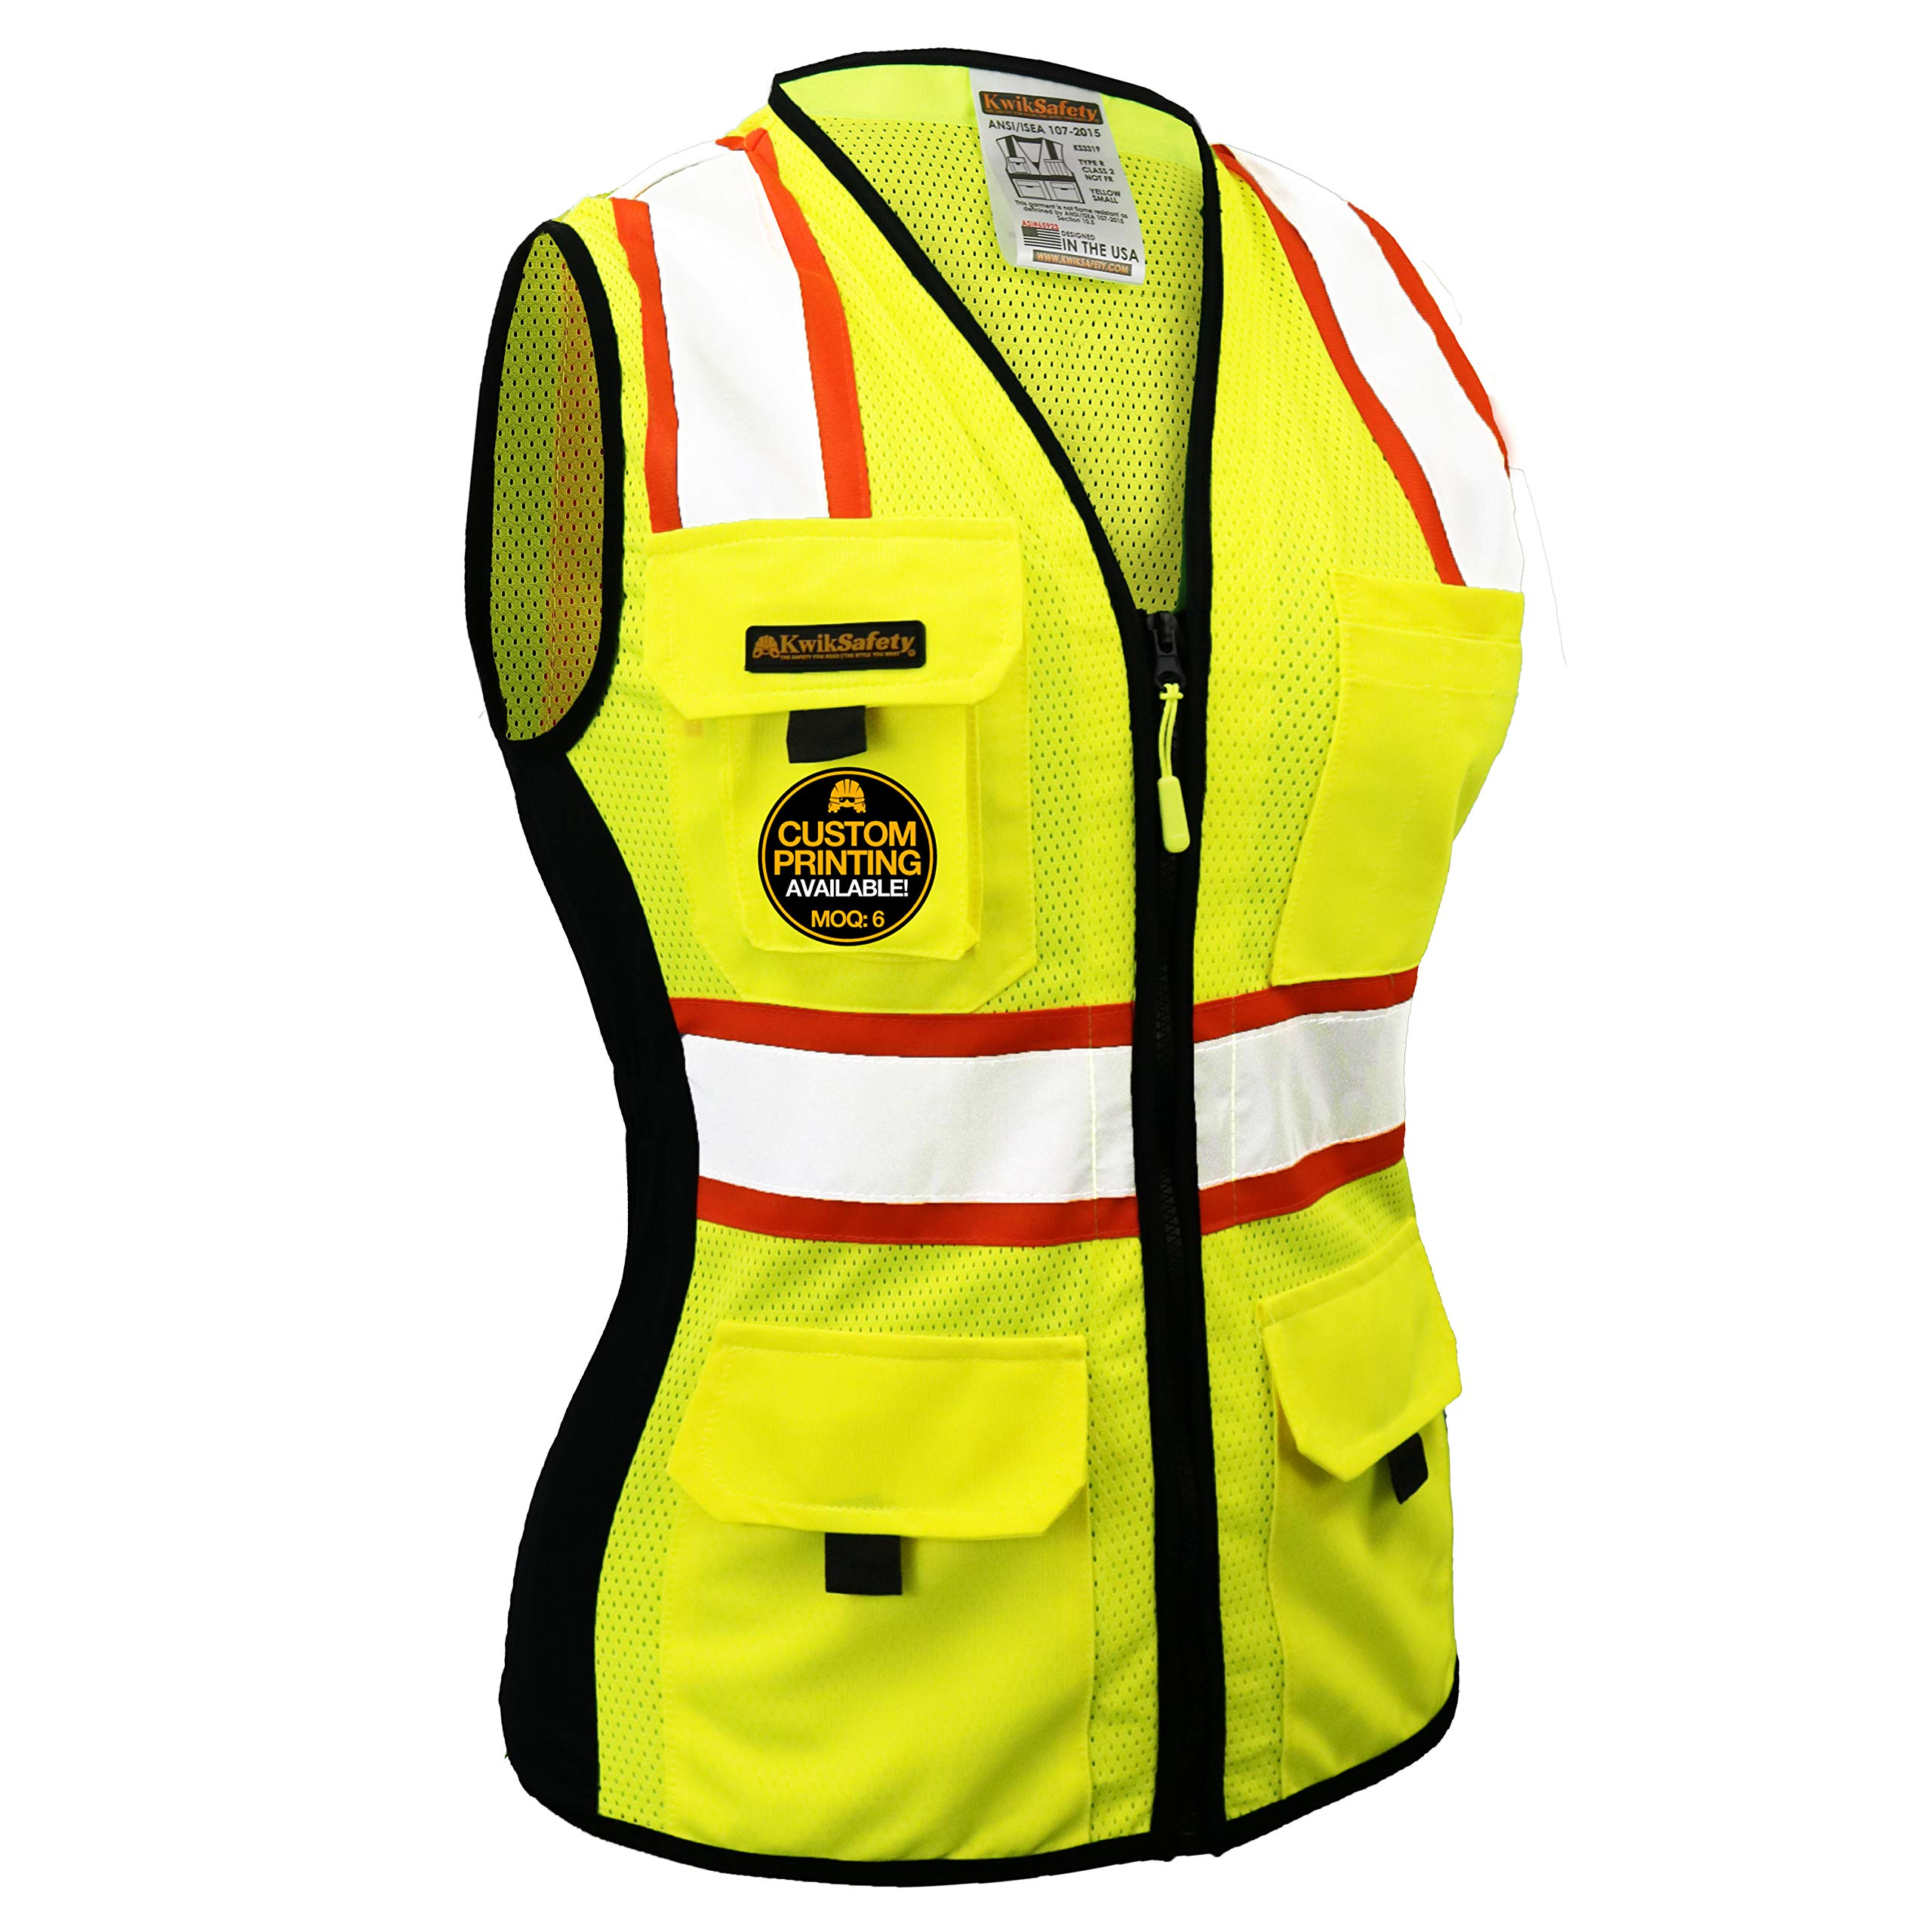 KwikSafety (Charlotte, NC) FIRST LADY Safety Vest for Women | Class 2 ANSI OSHA PPE | High Visibility Heavy Duty Mesh Pockets Zipper | Hi-Vis Construction Work Hi-Vis Surveyor Female | Yellow Large by KwikSafety (Image #7)